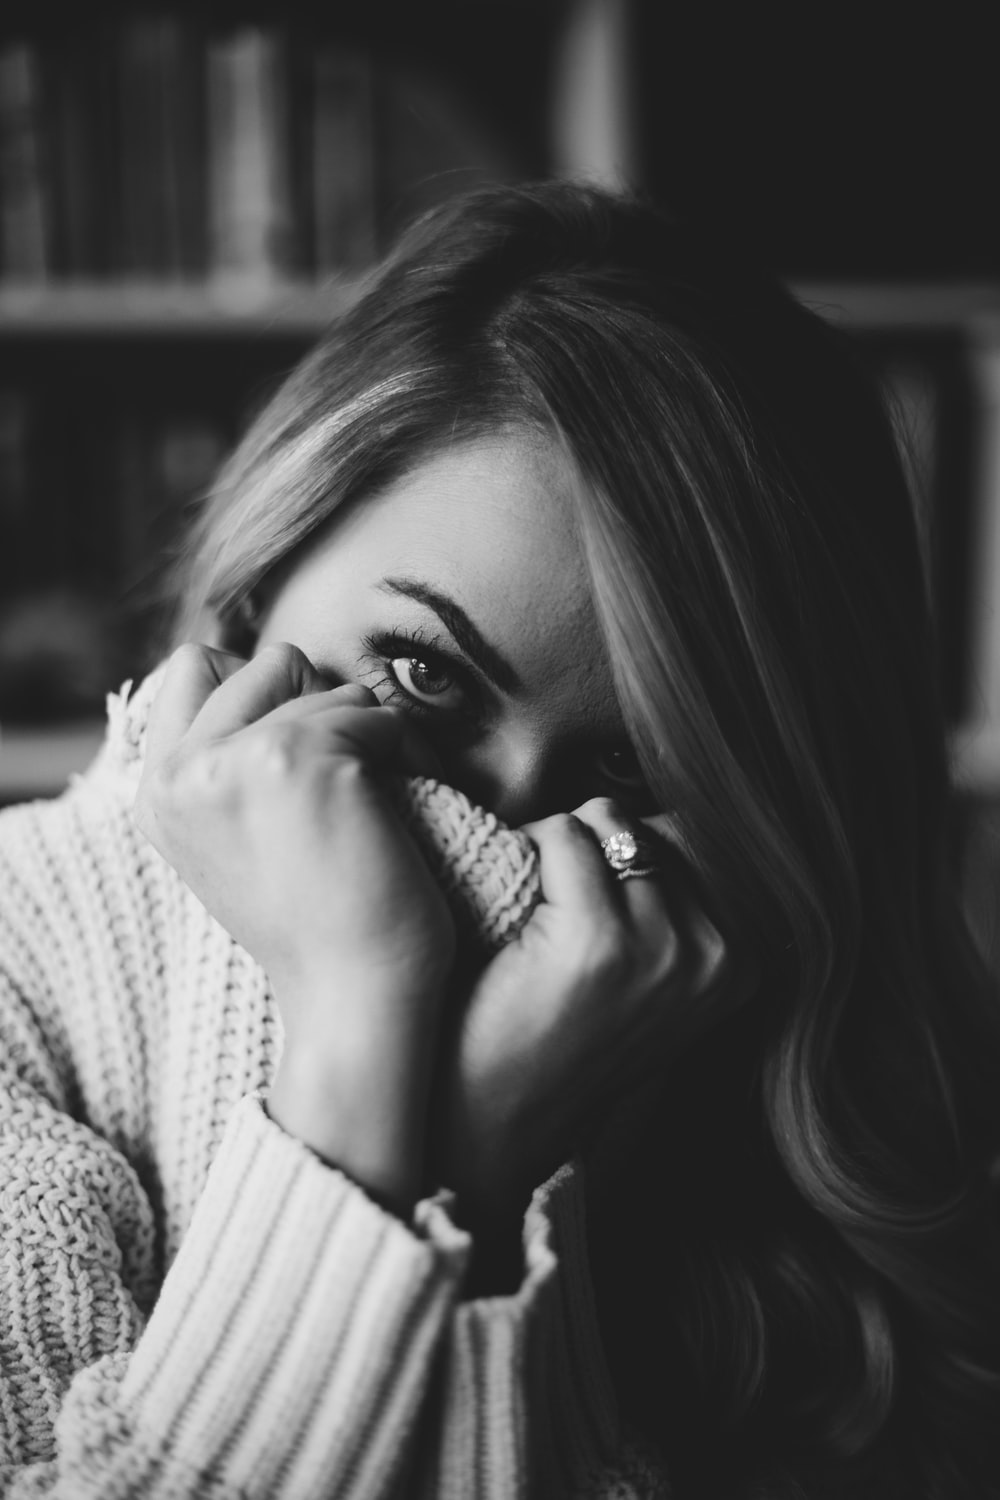 grayscale photography of woman covering face using sweater